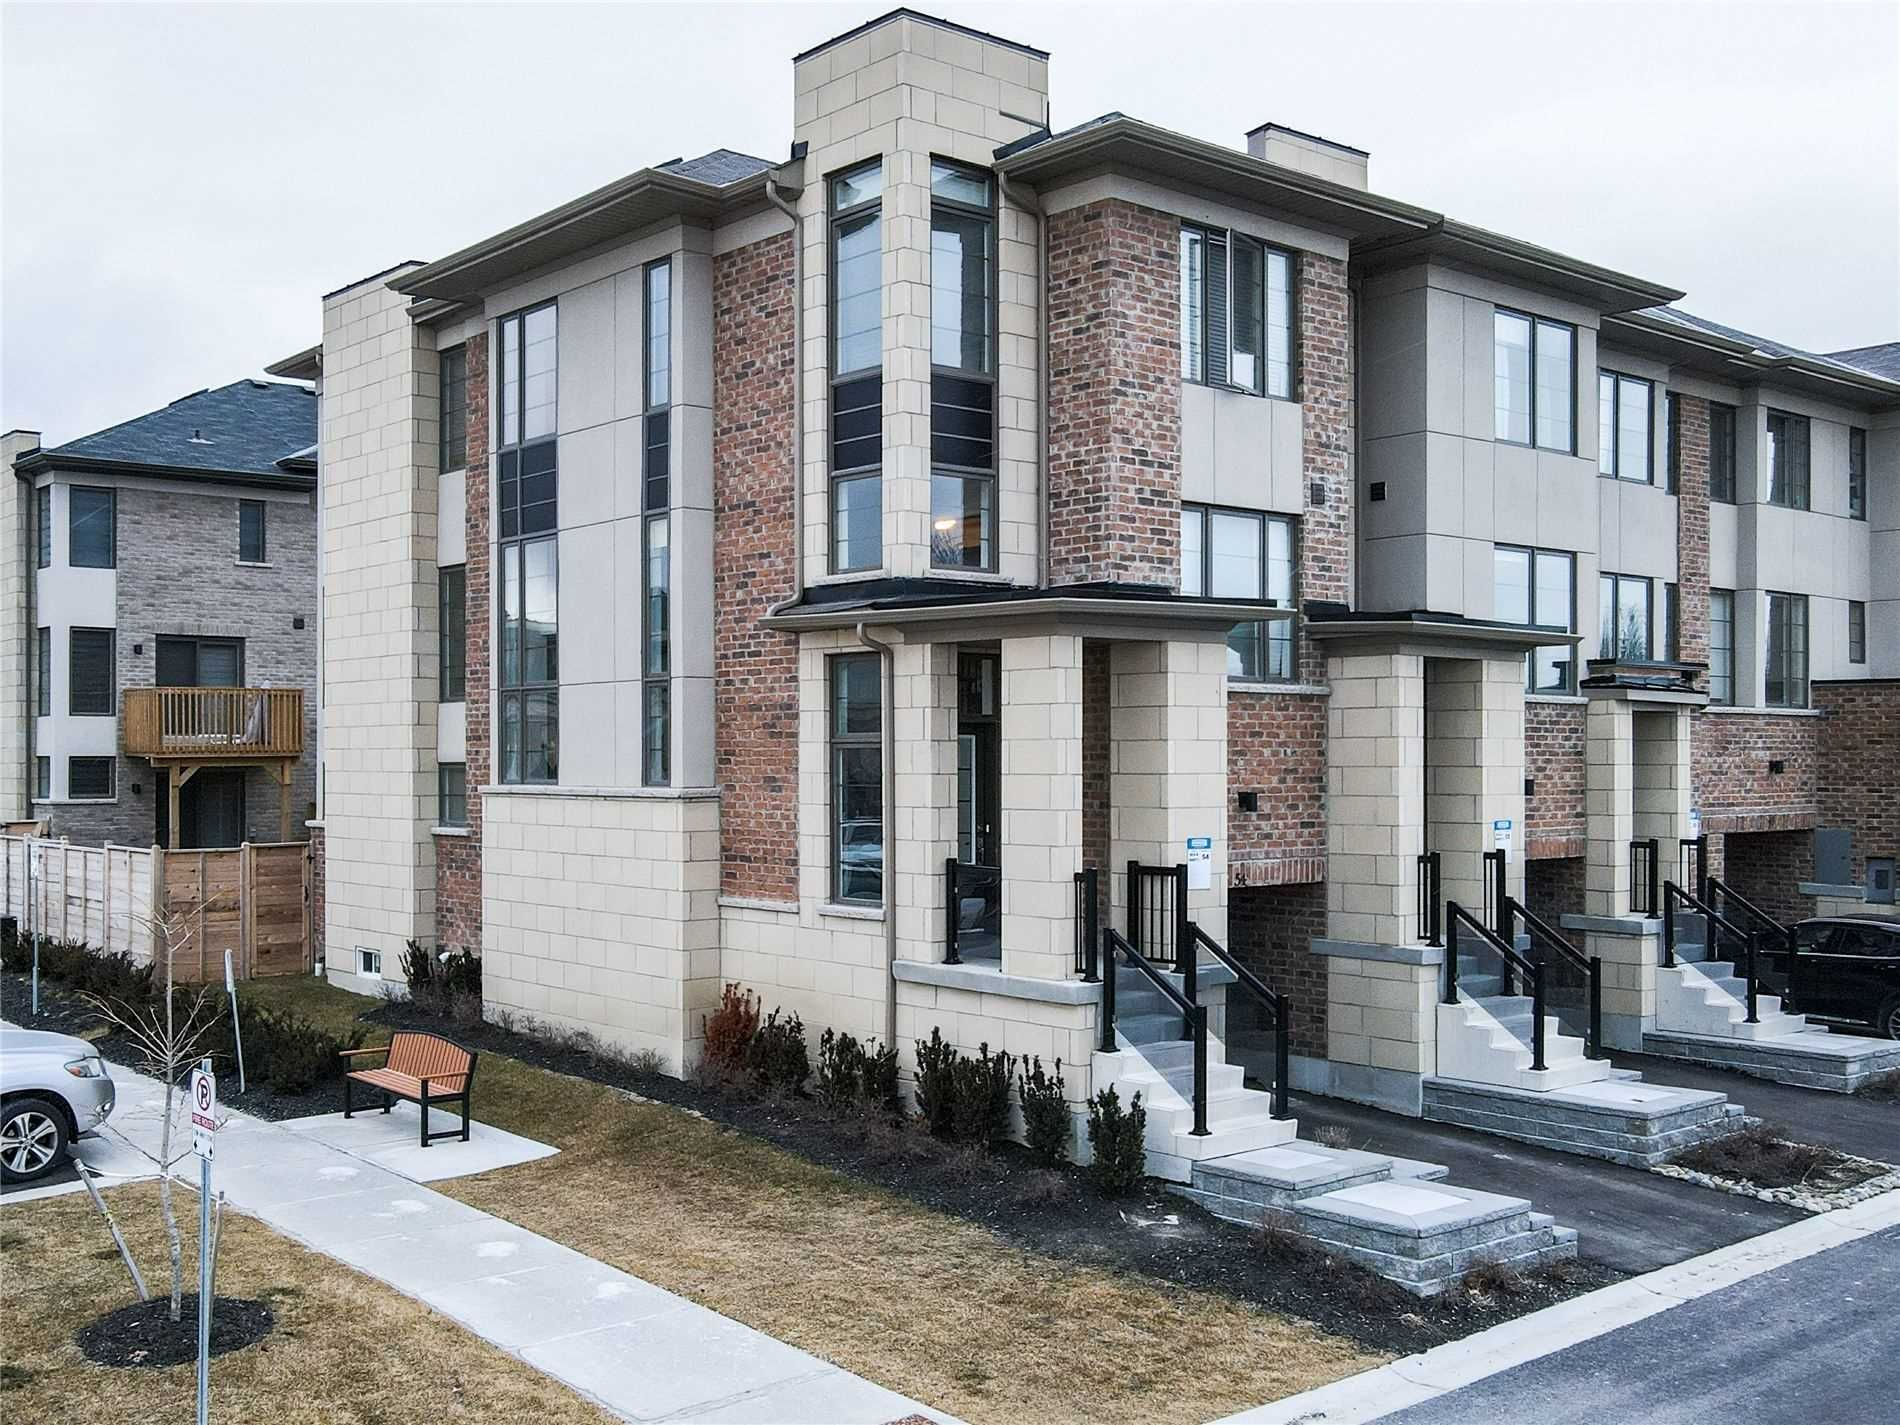 Main Photo: 54 Shawfield Way in Whitby: Pringle Creek House (3-Storey) for sale : MLS®# E5116924